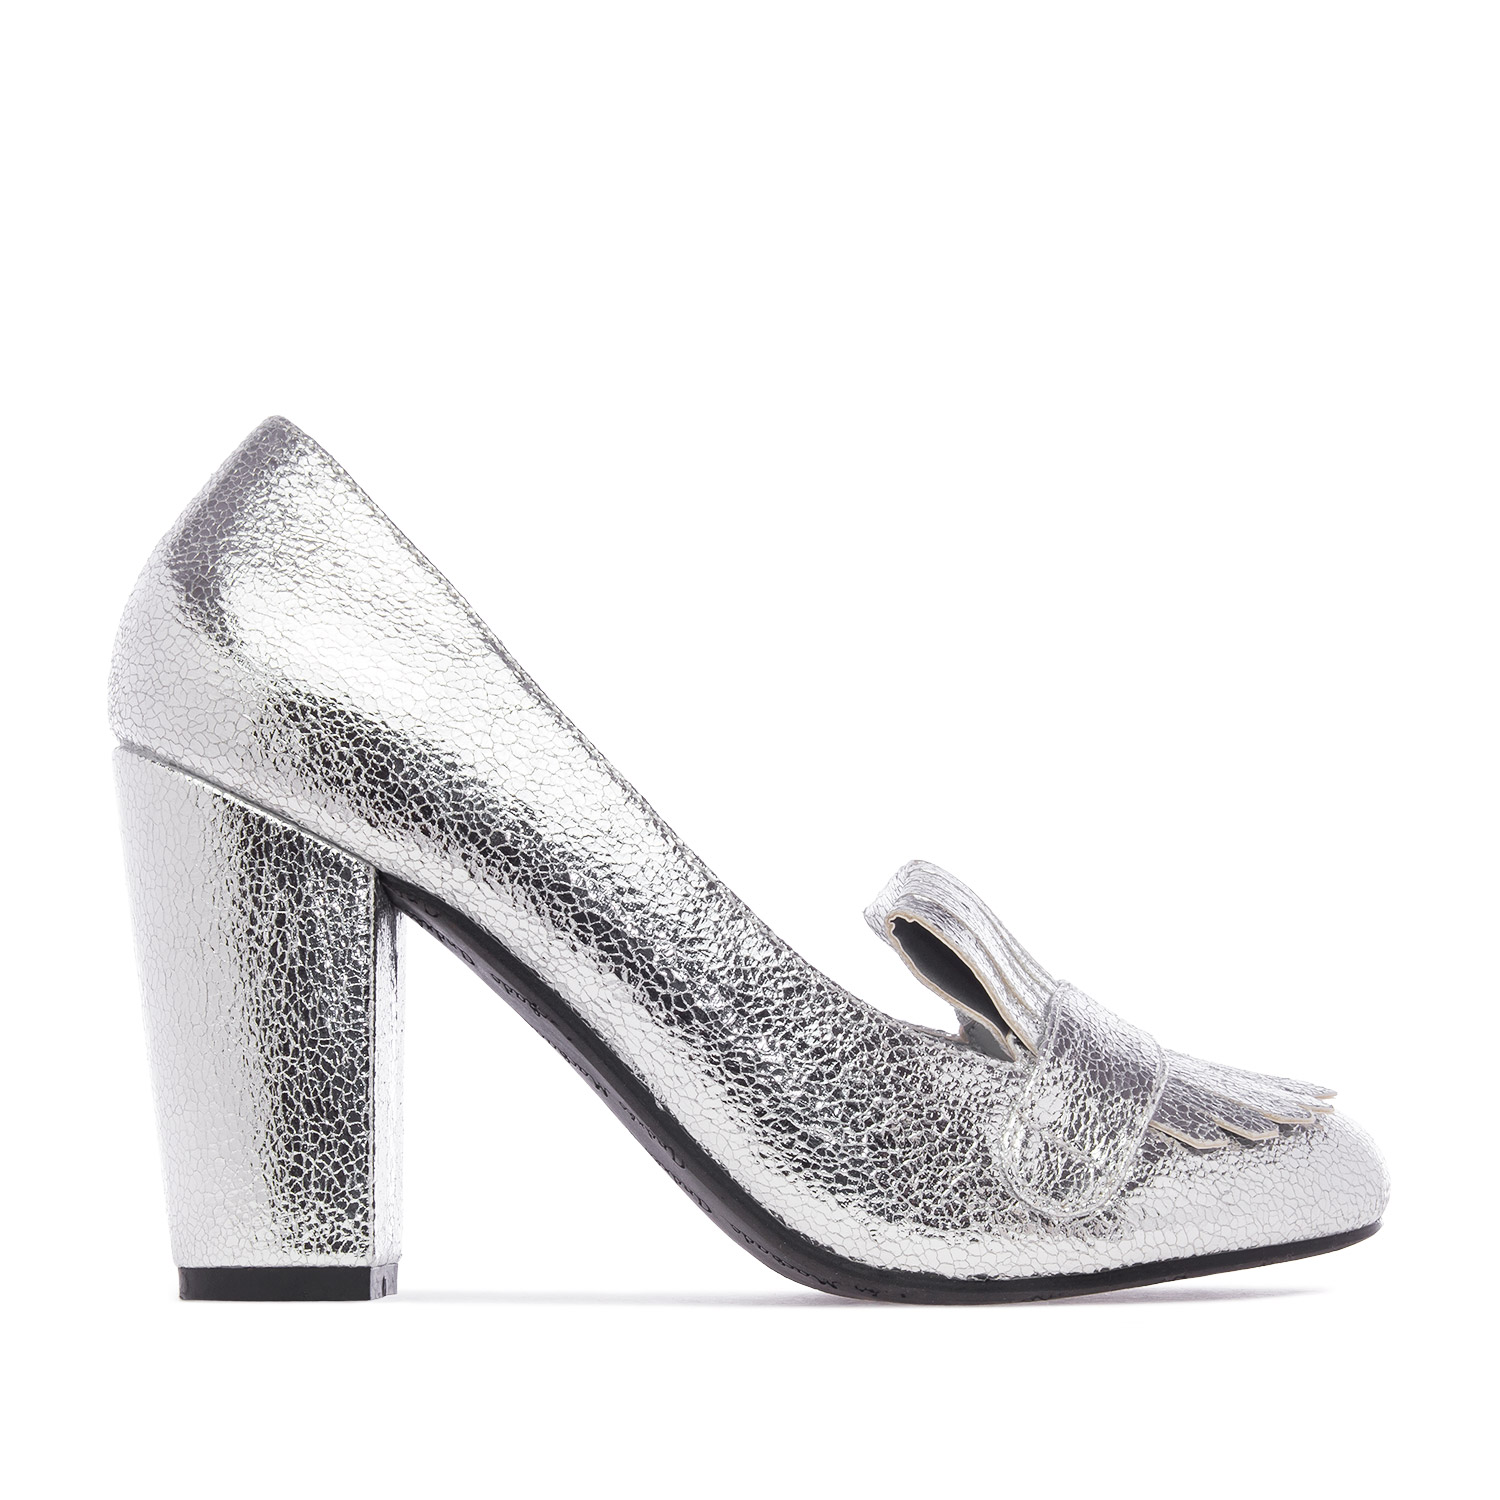 Slipper Pumps in Silver Glitter